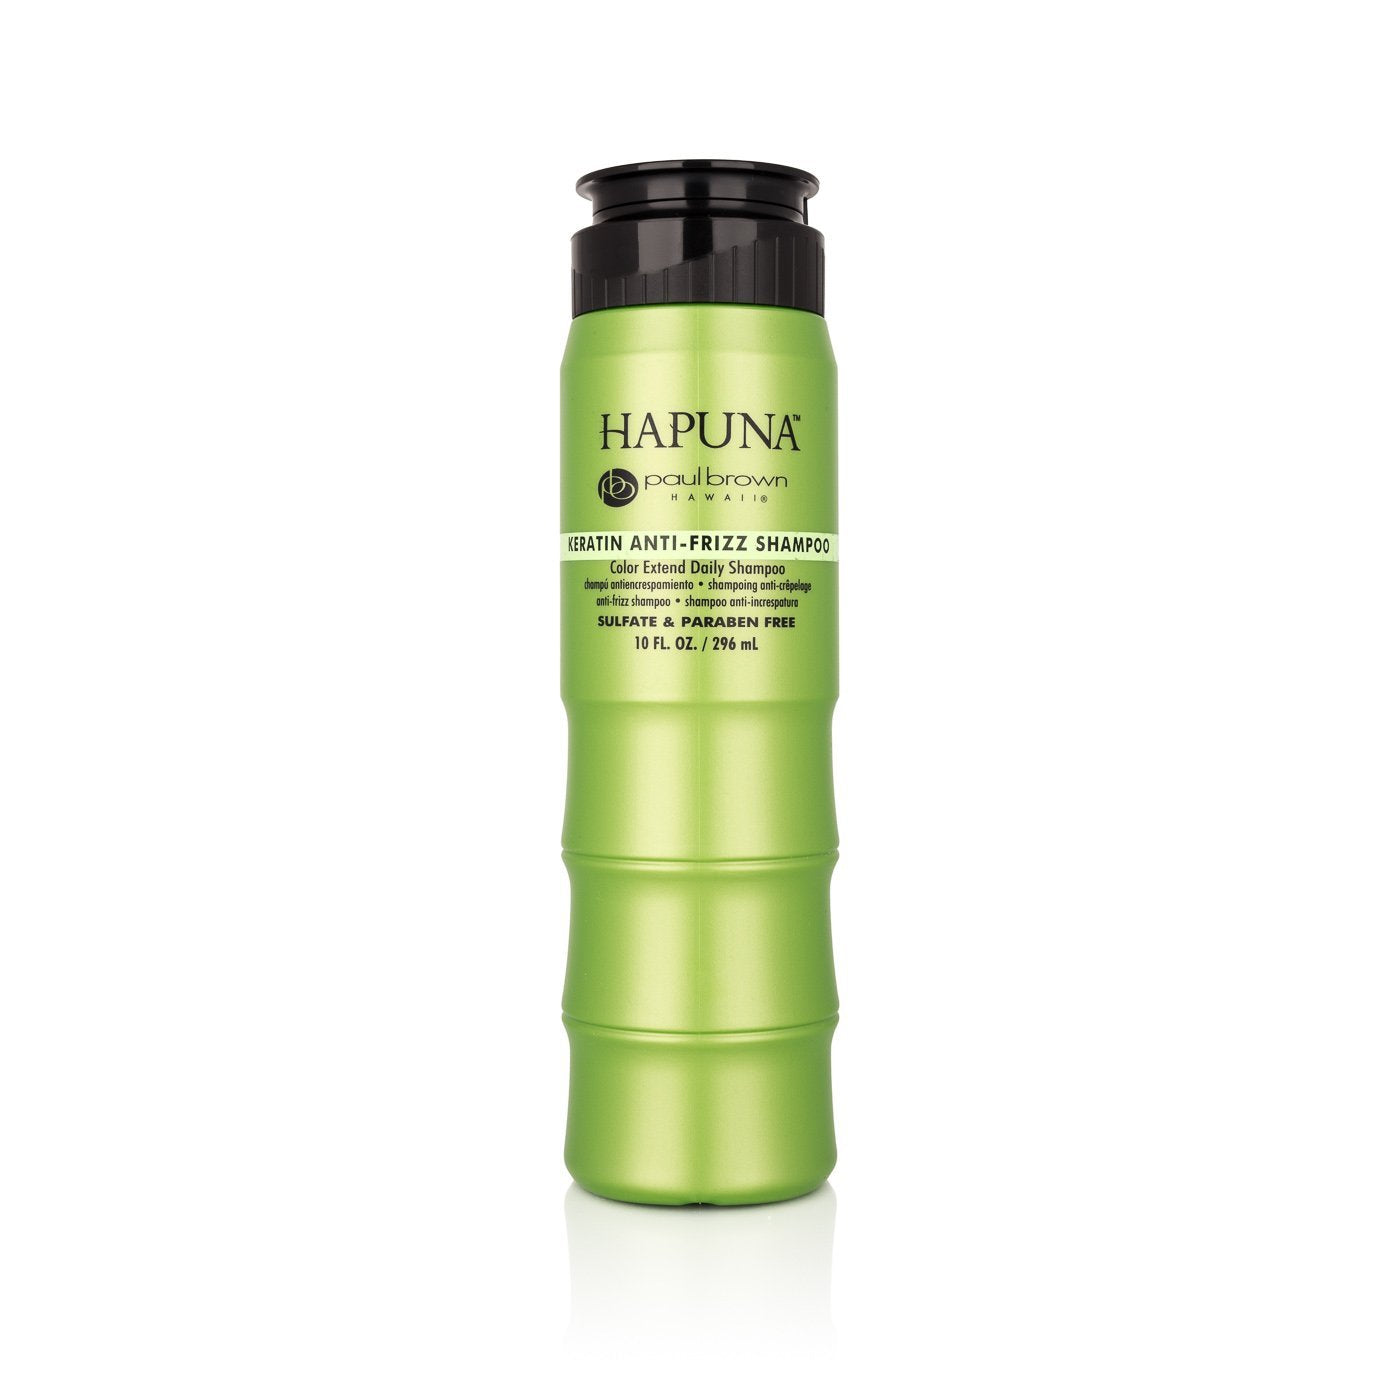 PAUL BROWN - The Best Hapuna Silk Infused Shampoo FOR ALL HAIR TYPES (10 fl oz)